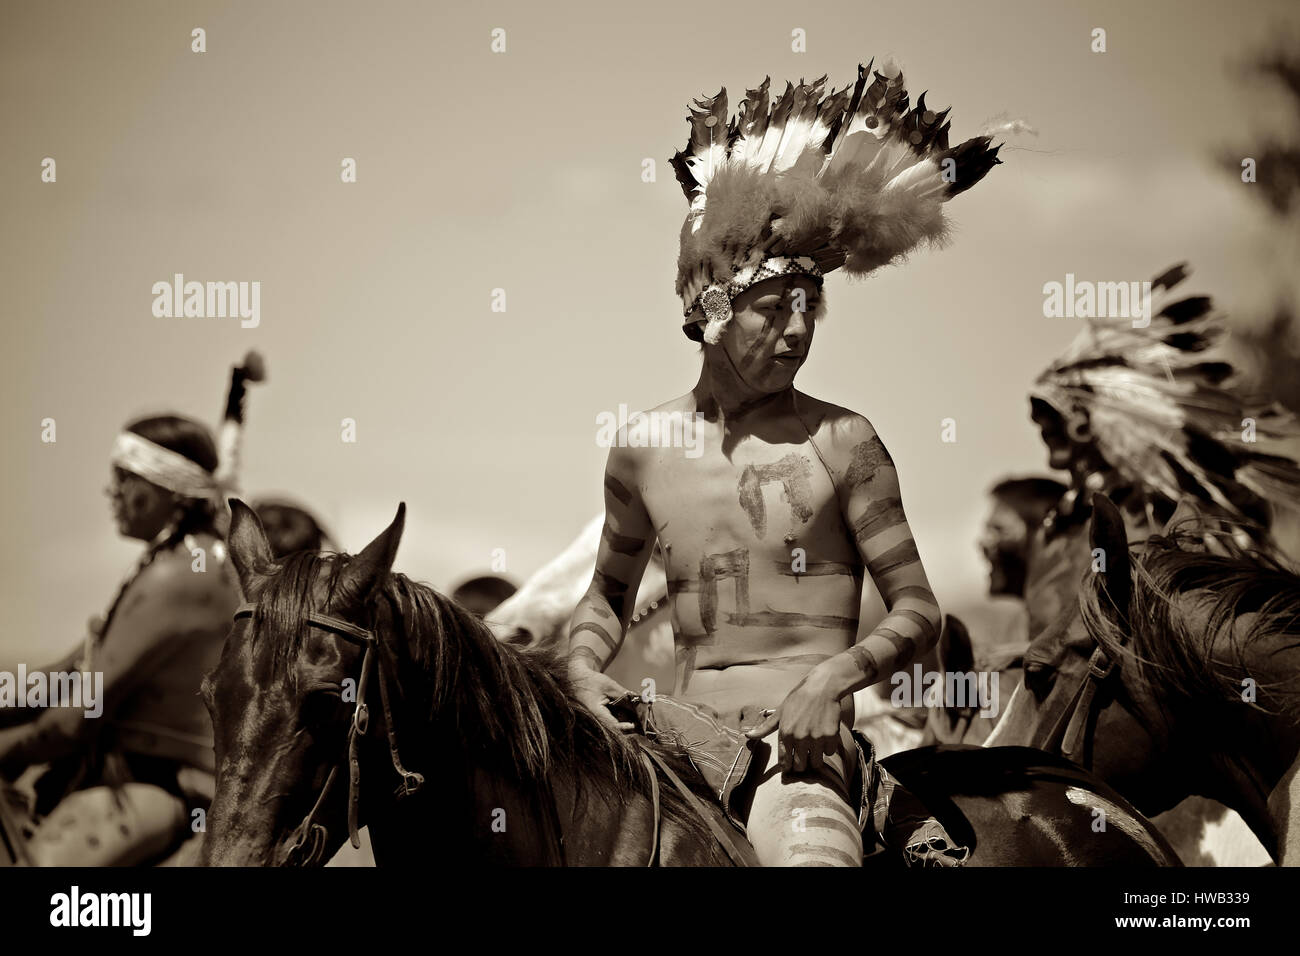 Native American Indians Crazy Horse Battle Of Little Big Horn Stock Photo Alamy